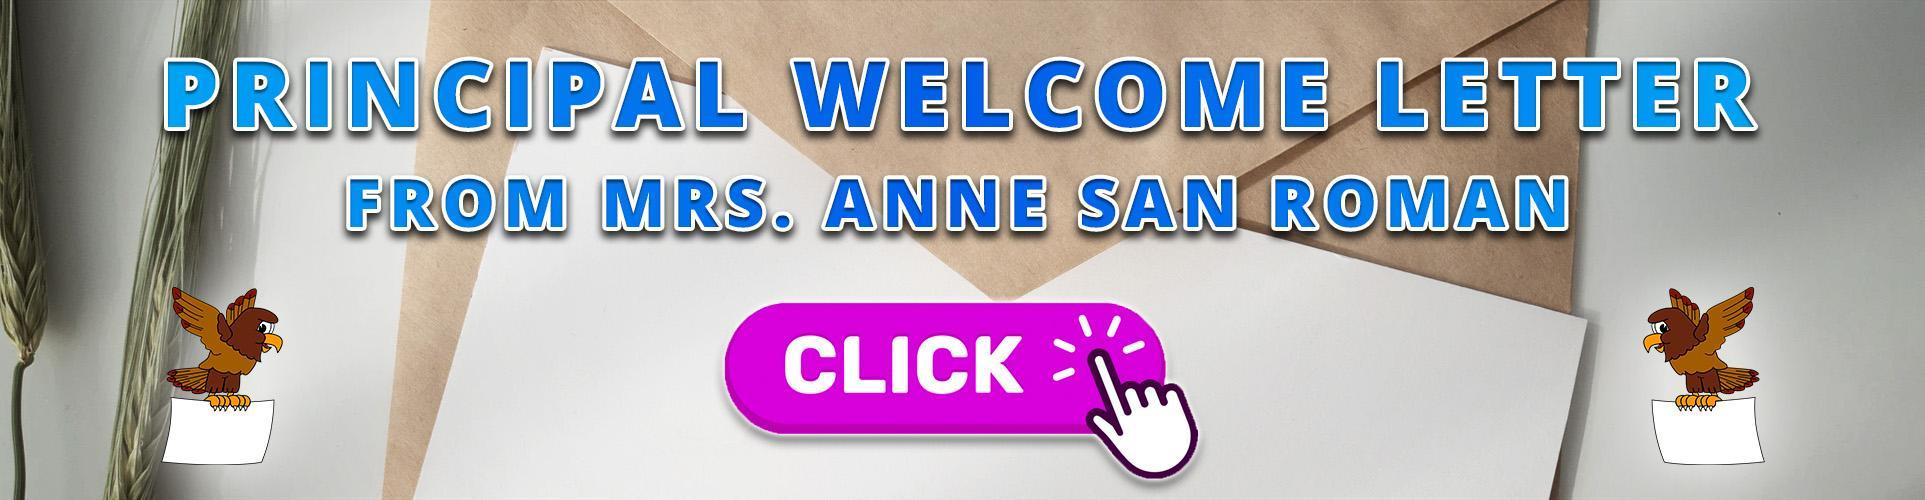 Principal Welcome Letter From Mrs. Anne San Roman